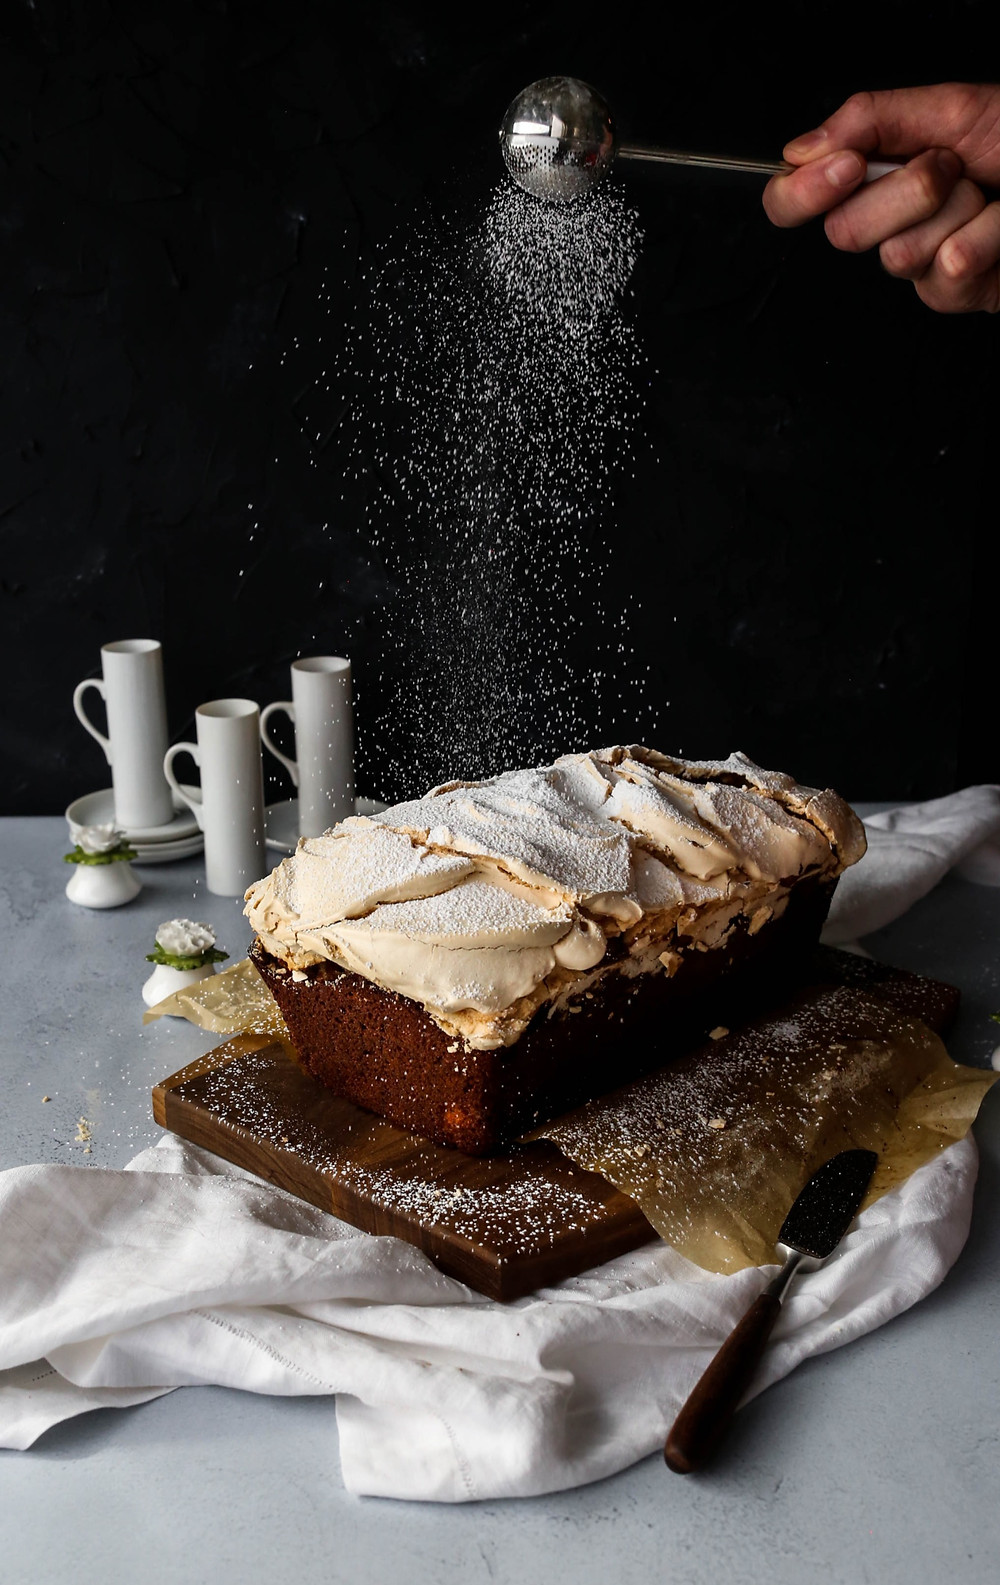 A apple and honey spiced loaf cake, topped with swirls of baked meringue. A dusting of powdered sugar is caught in mid air, floating down to coat the loaf.